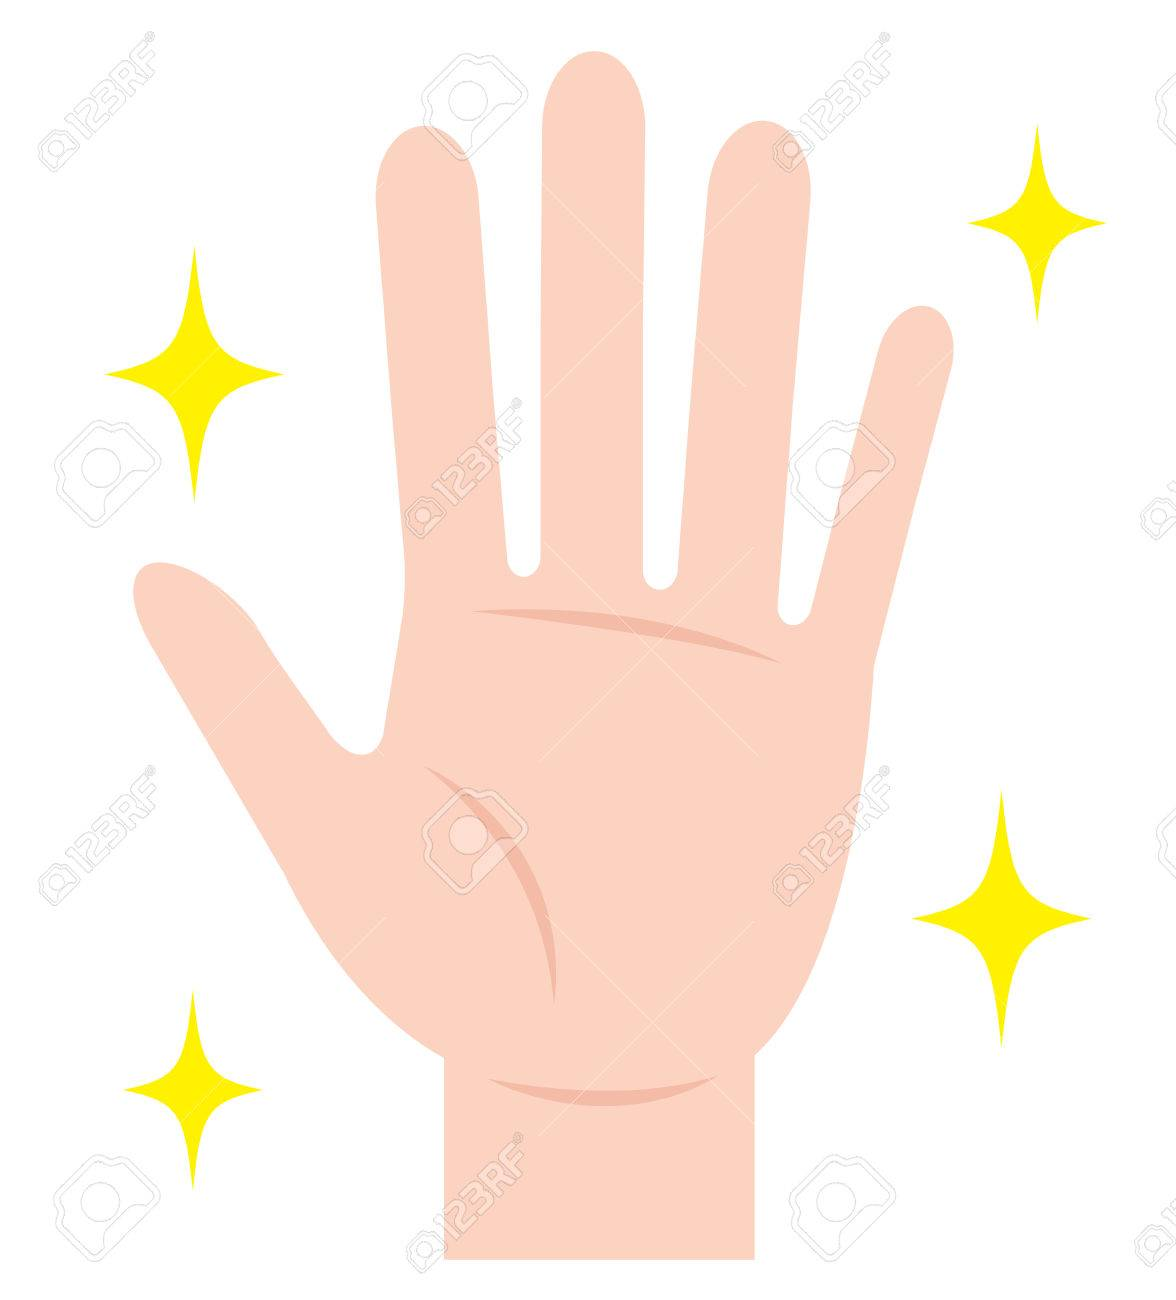 clean hand hand hygiene royalty free cliparts vectors and stock rh 123rf com vector hand graphics vector handshake